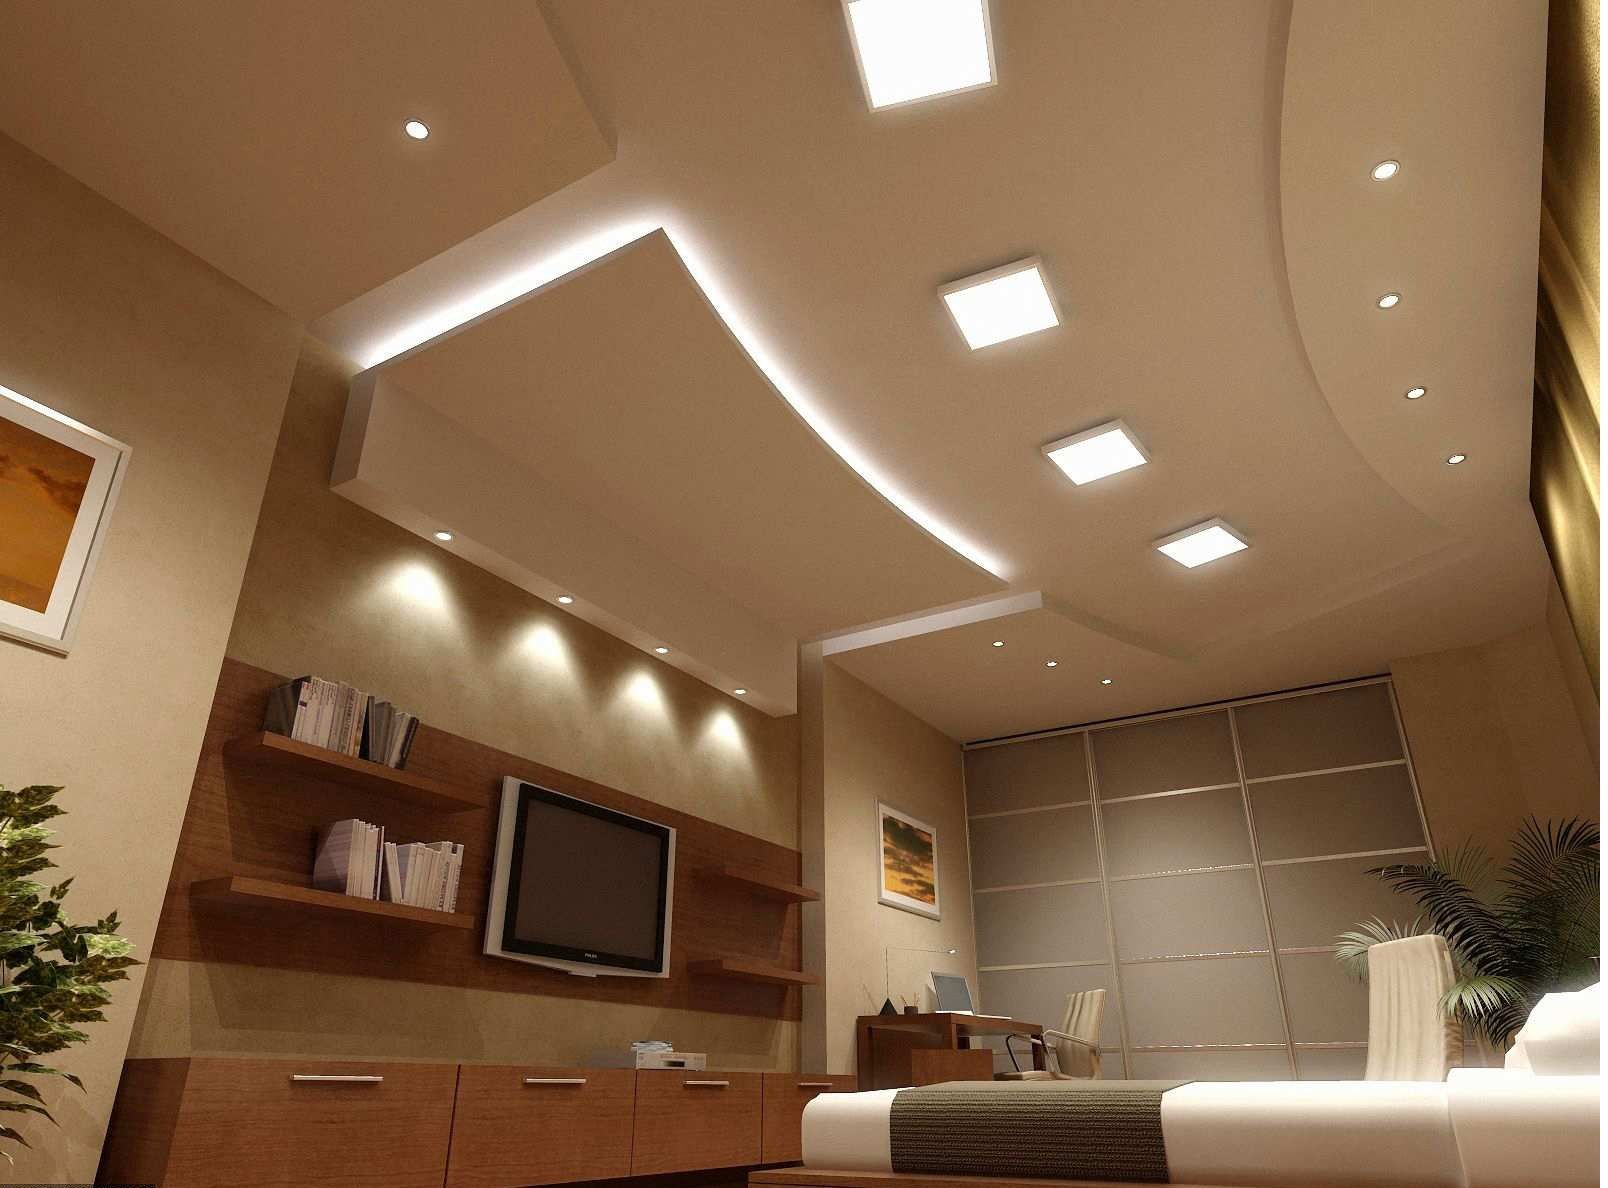 lighting for ceilings. creative 10 ideas for residential lighting ceilings s